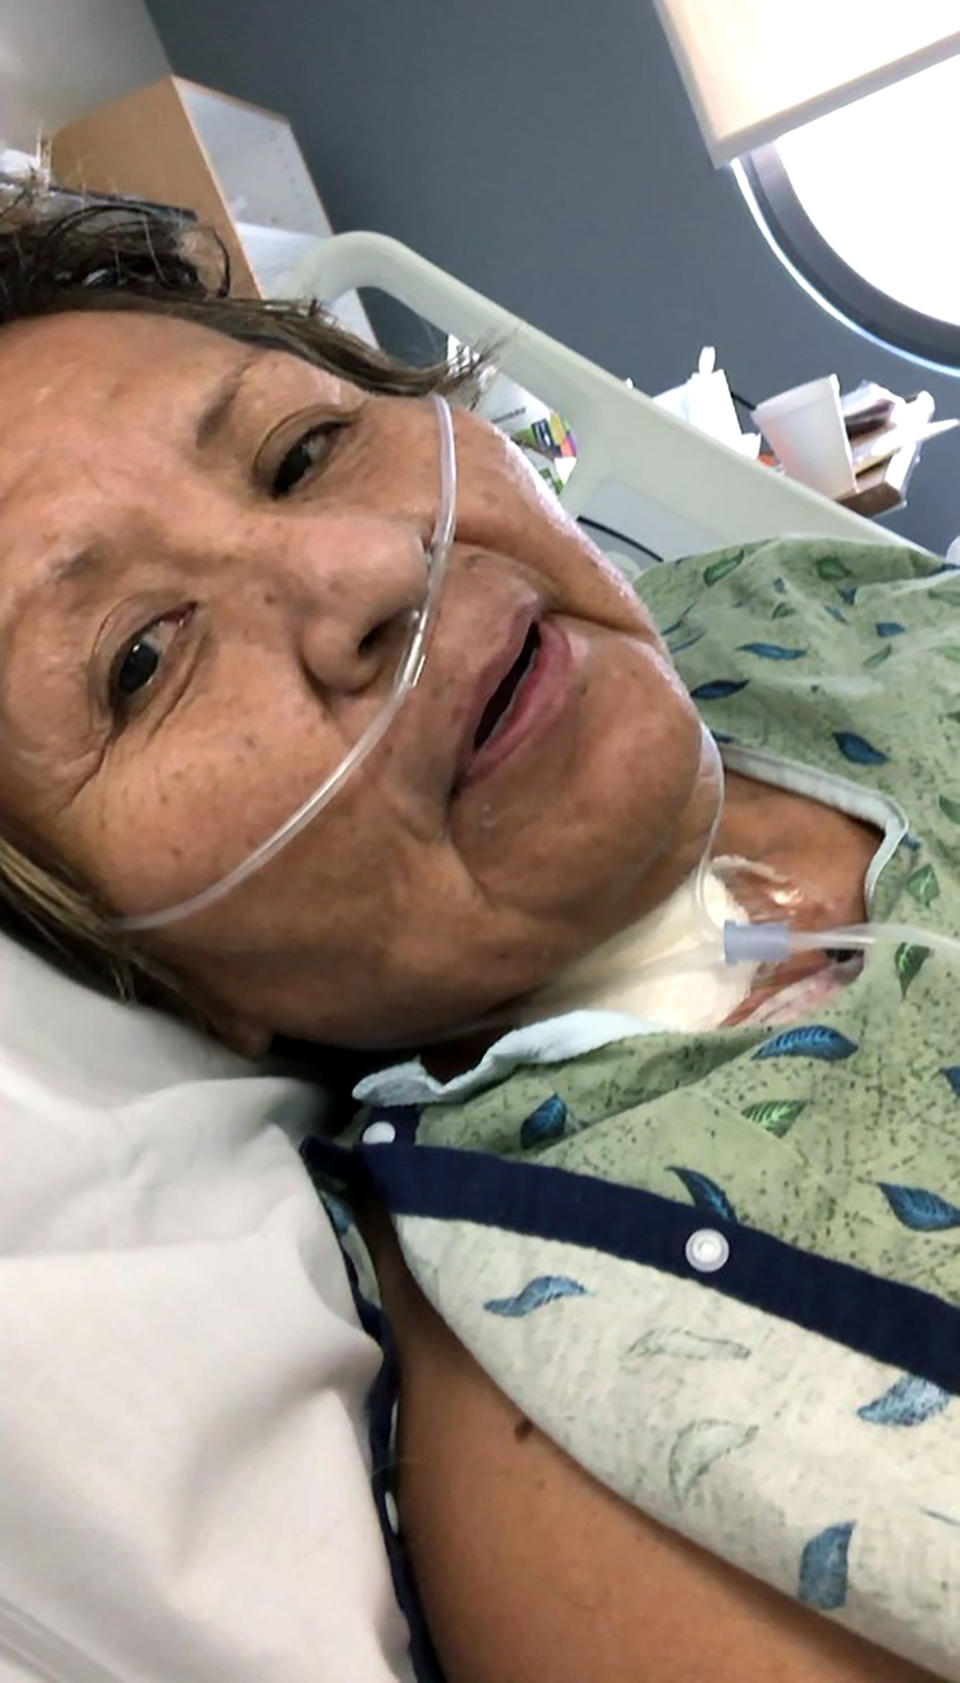 This April 17, 2020 photo provided by Shannon Todecheene shows her mother, Carol Todecheene, in a Phoenix hospital after contracting the coronavirus. Carol Todecheene was among those severely hit with the virus. (Shannon Todecheene via AP)